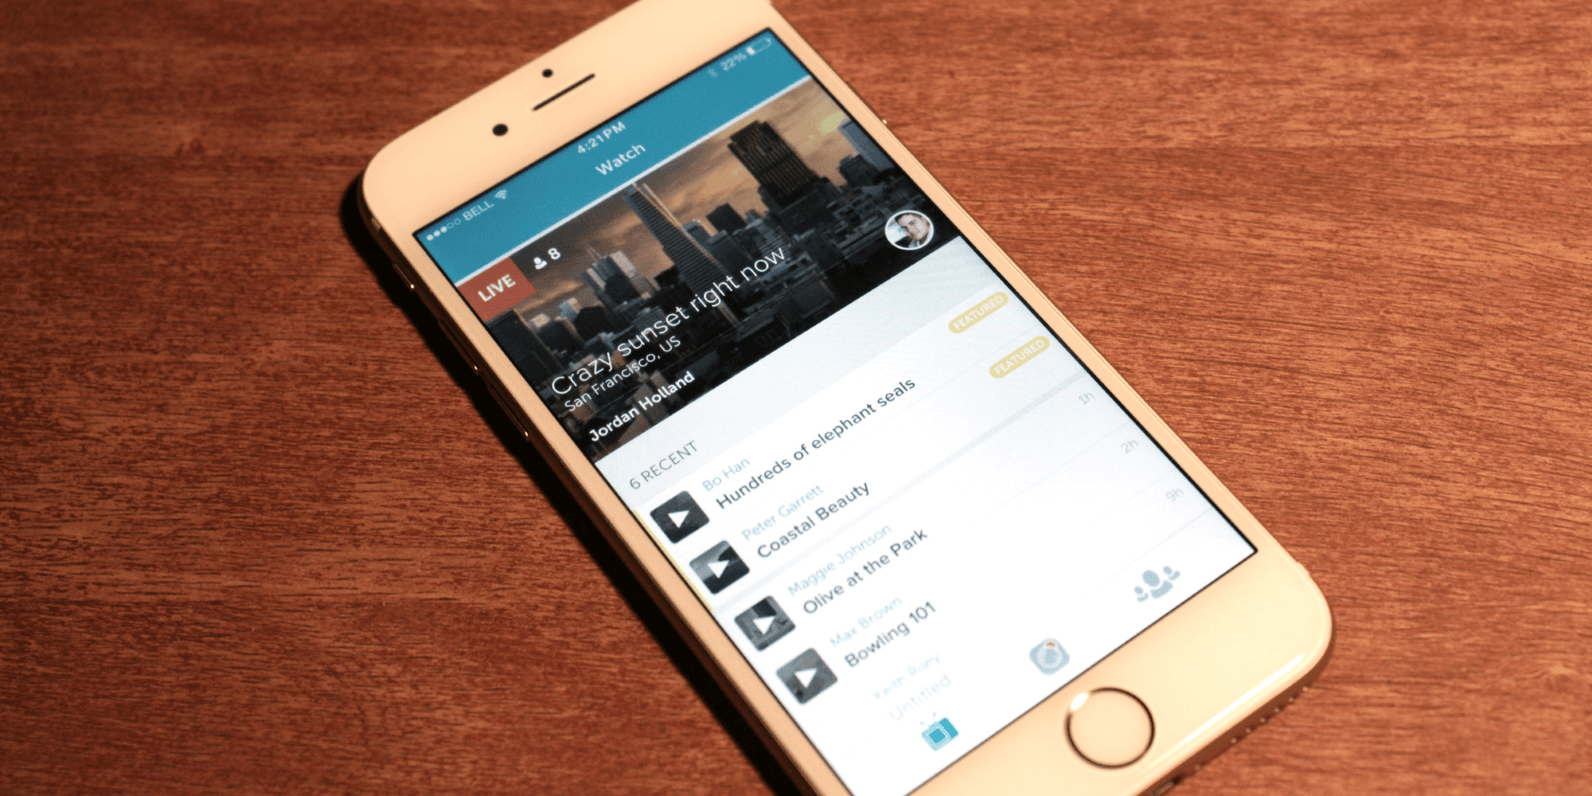 Periscope suicide could lead to closer scrutiny of live-streaming